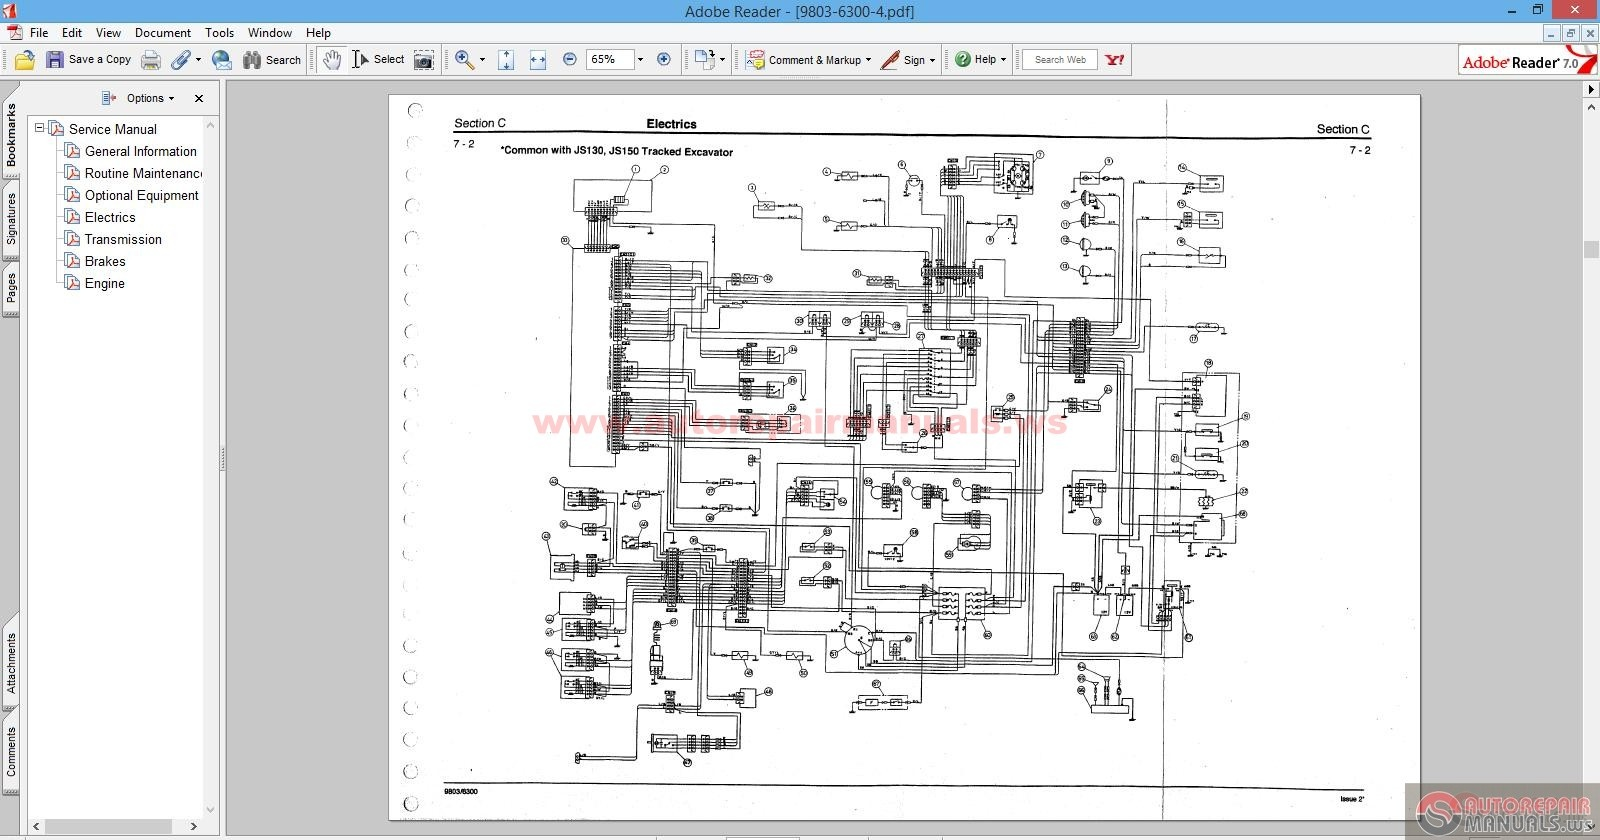 JCB_Compact_Serv_Manuals_Kg_S3A_Issue507 jcb wiring diagram efcaviation com jcb wiring diagram at alyssarenee.co